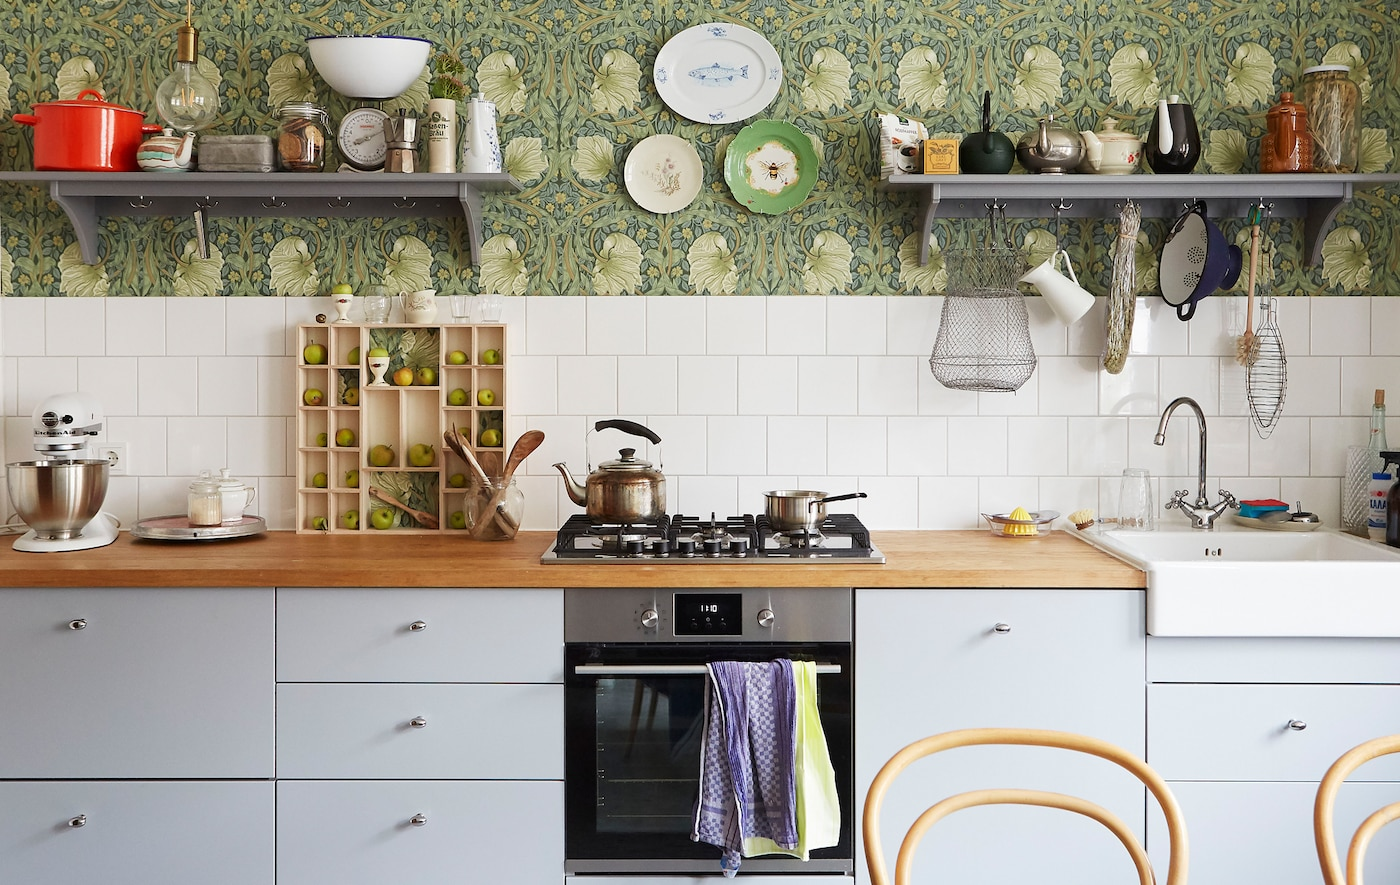 A kitchen with grey cabinets and built-in cooker, wooden worktops, and shelves on patterned floral wallpaper.